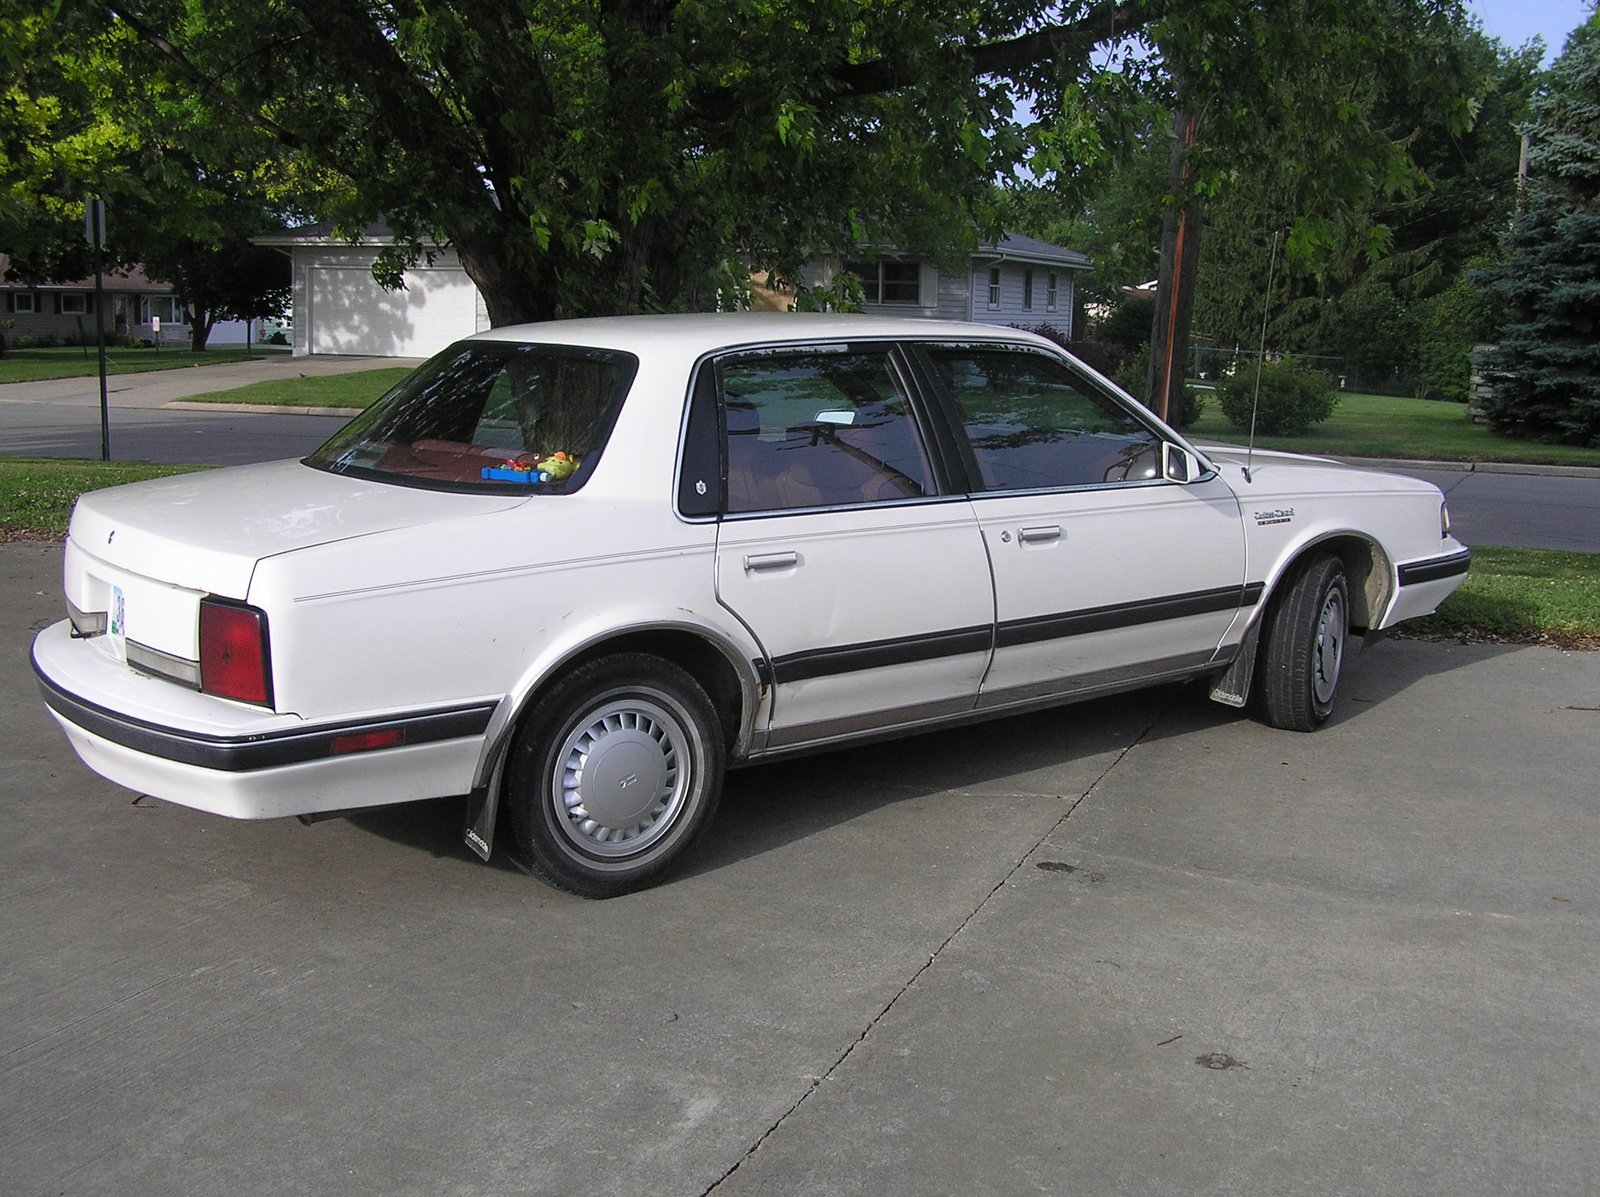 1990 Oldsmobile Cutlass Ciera - Pictures - 1990 Oldsmobile Cutlass ...